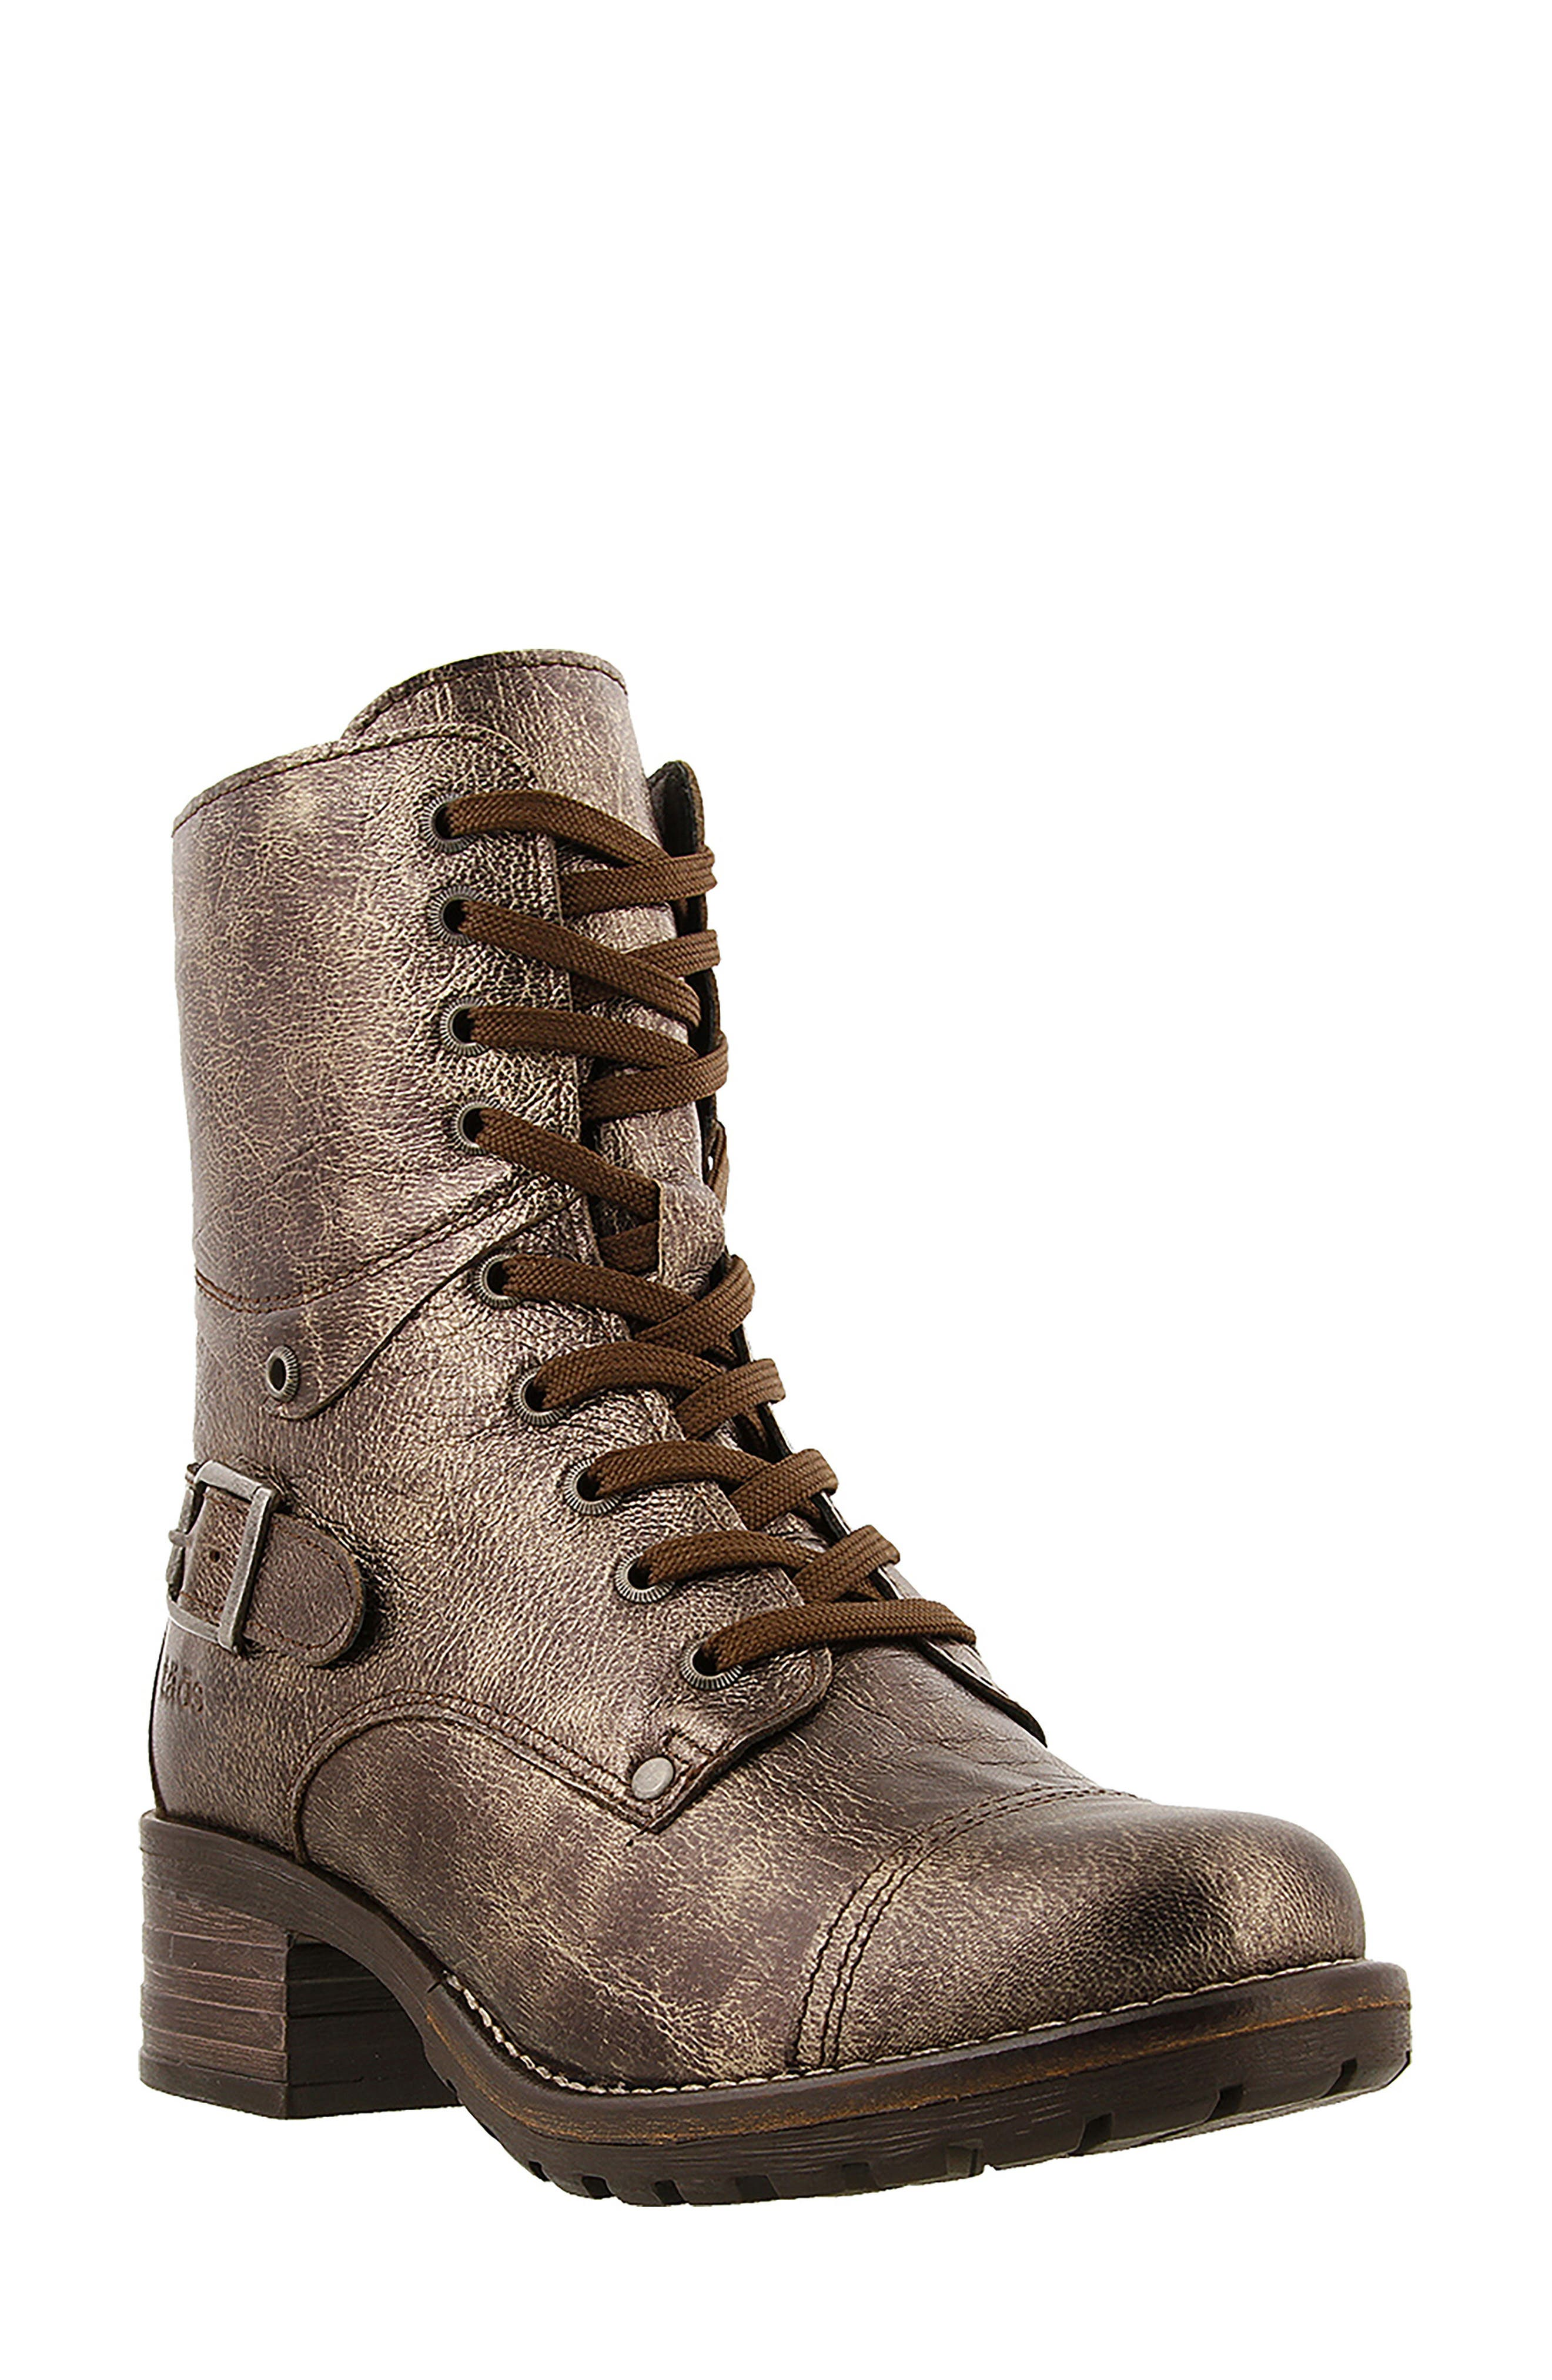 Crave Boot,                             Main thumbnail 1, color,                             BRONZE LEATHER